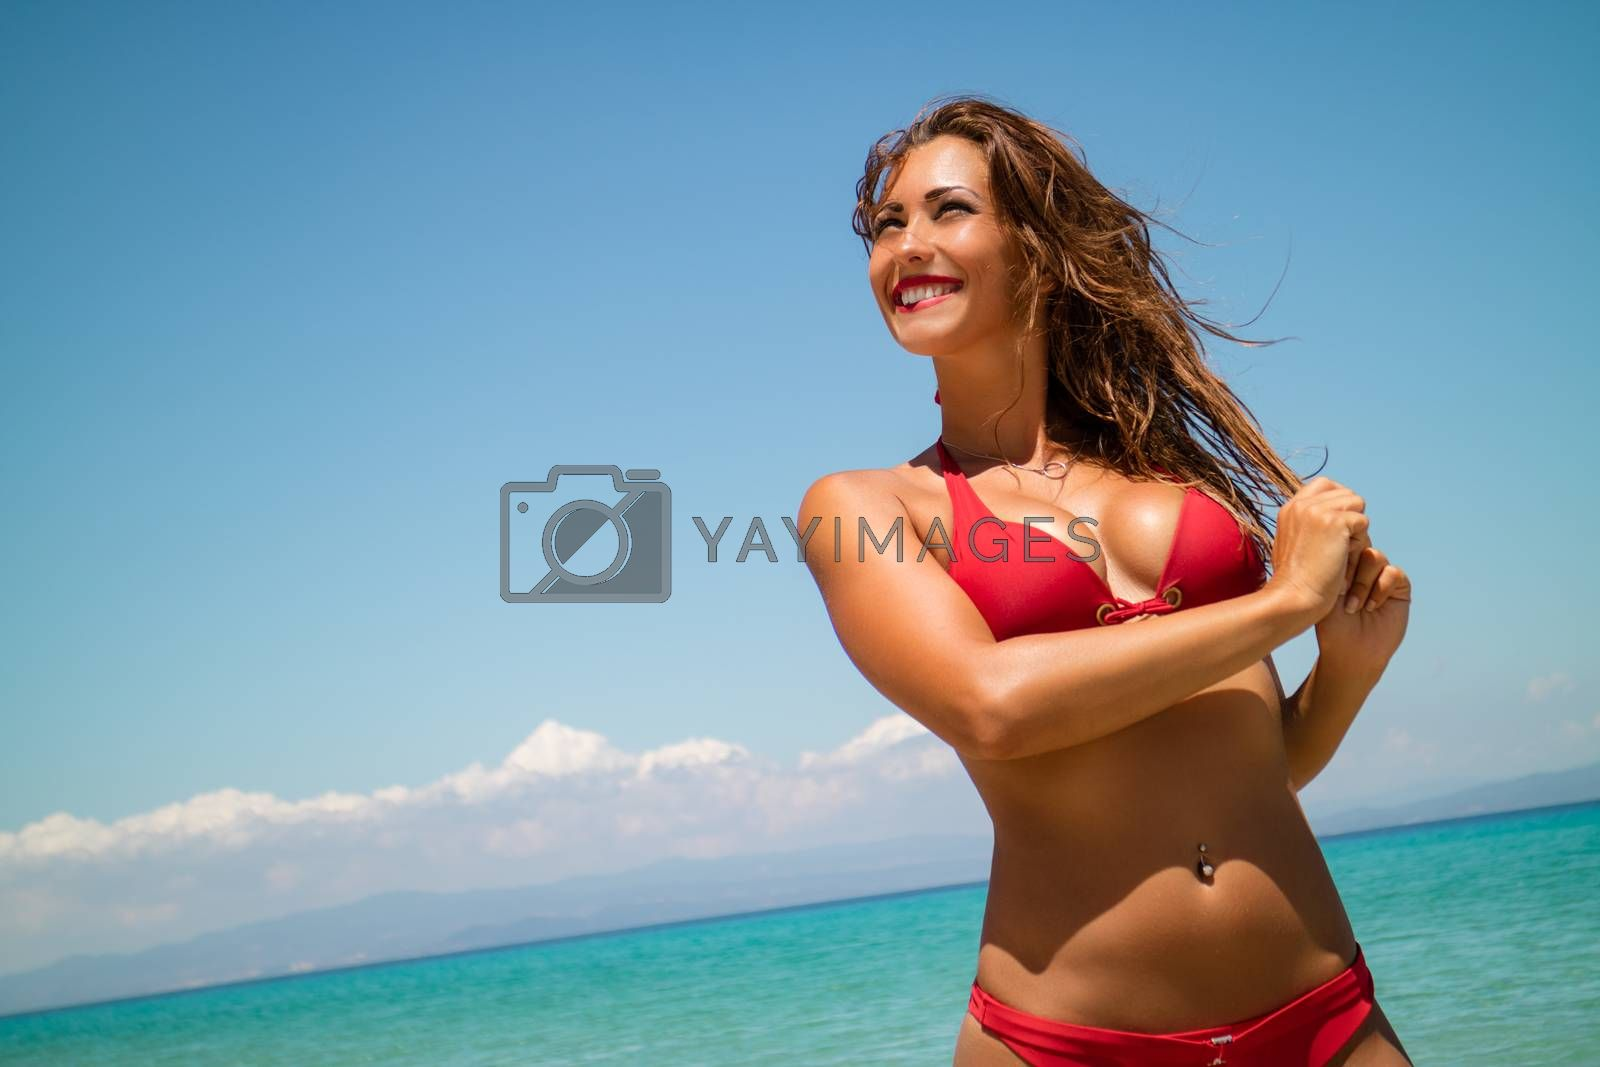 Portrait of a beautiful young woman enjoying on the beach. She is smiling and looking away.